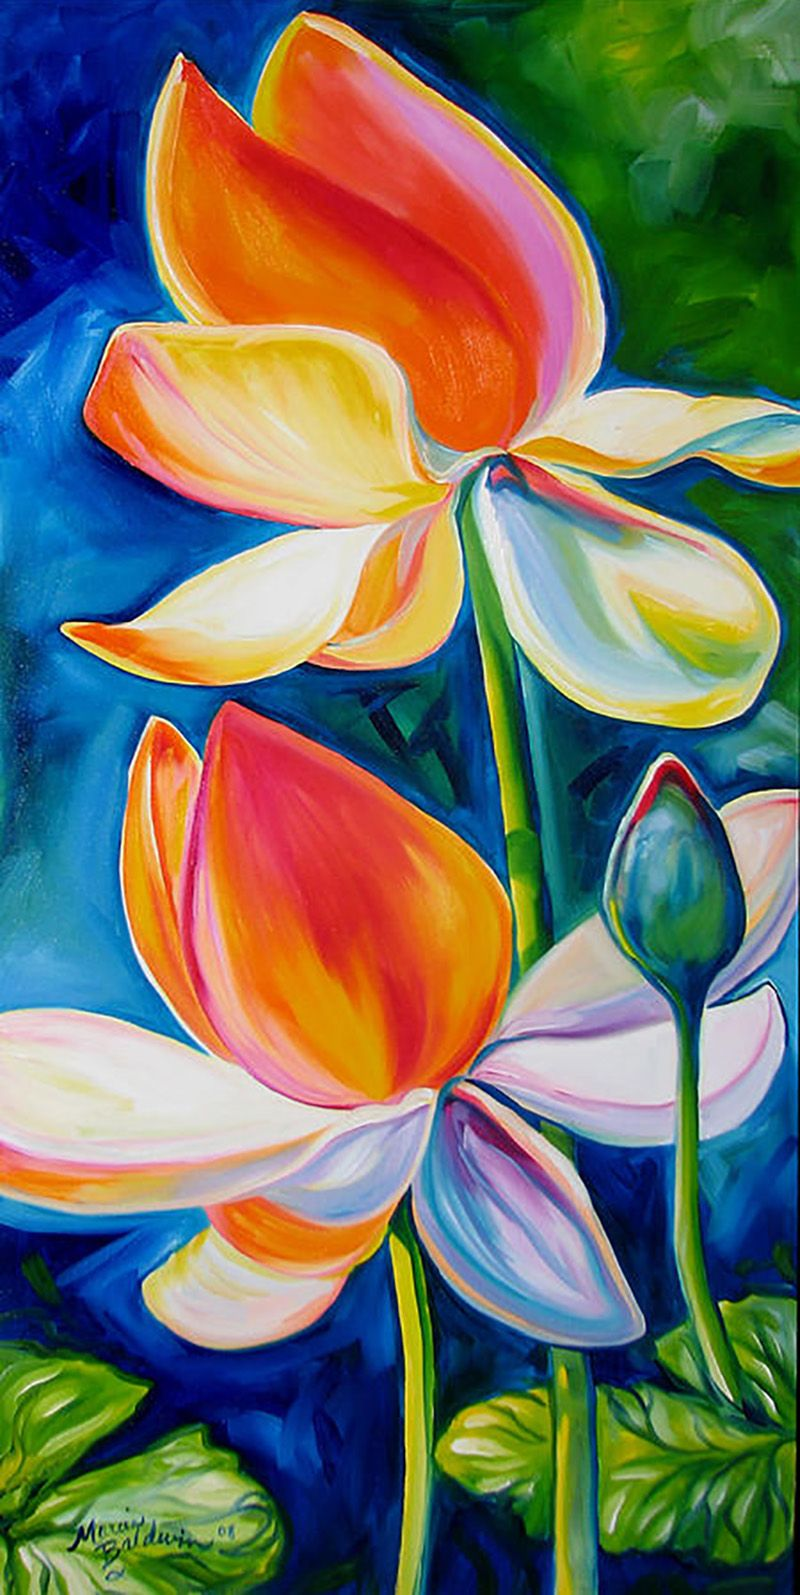 Lotus blossoming par marcia baldwin tiw pinterest lotus lotus blossoming by marcia baldwin lotus blossoming painting lotus blossoming fine art prints and posters for sale izmirmasajfo